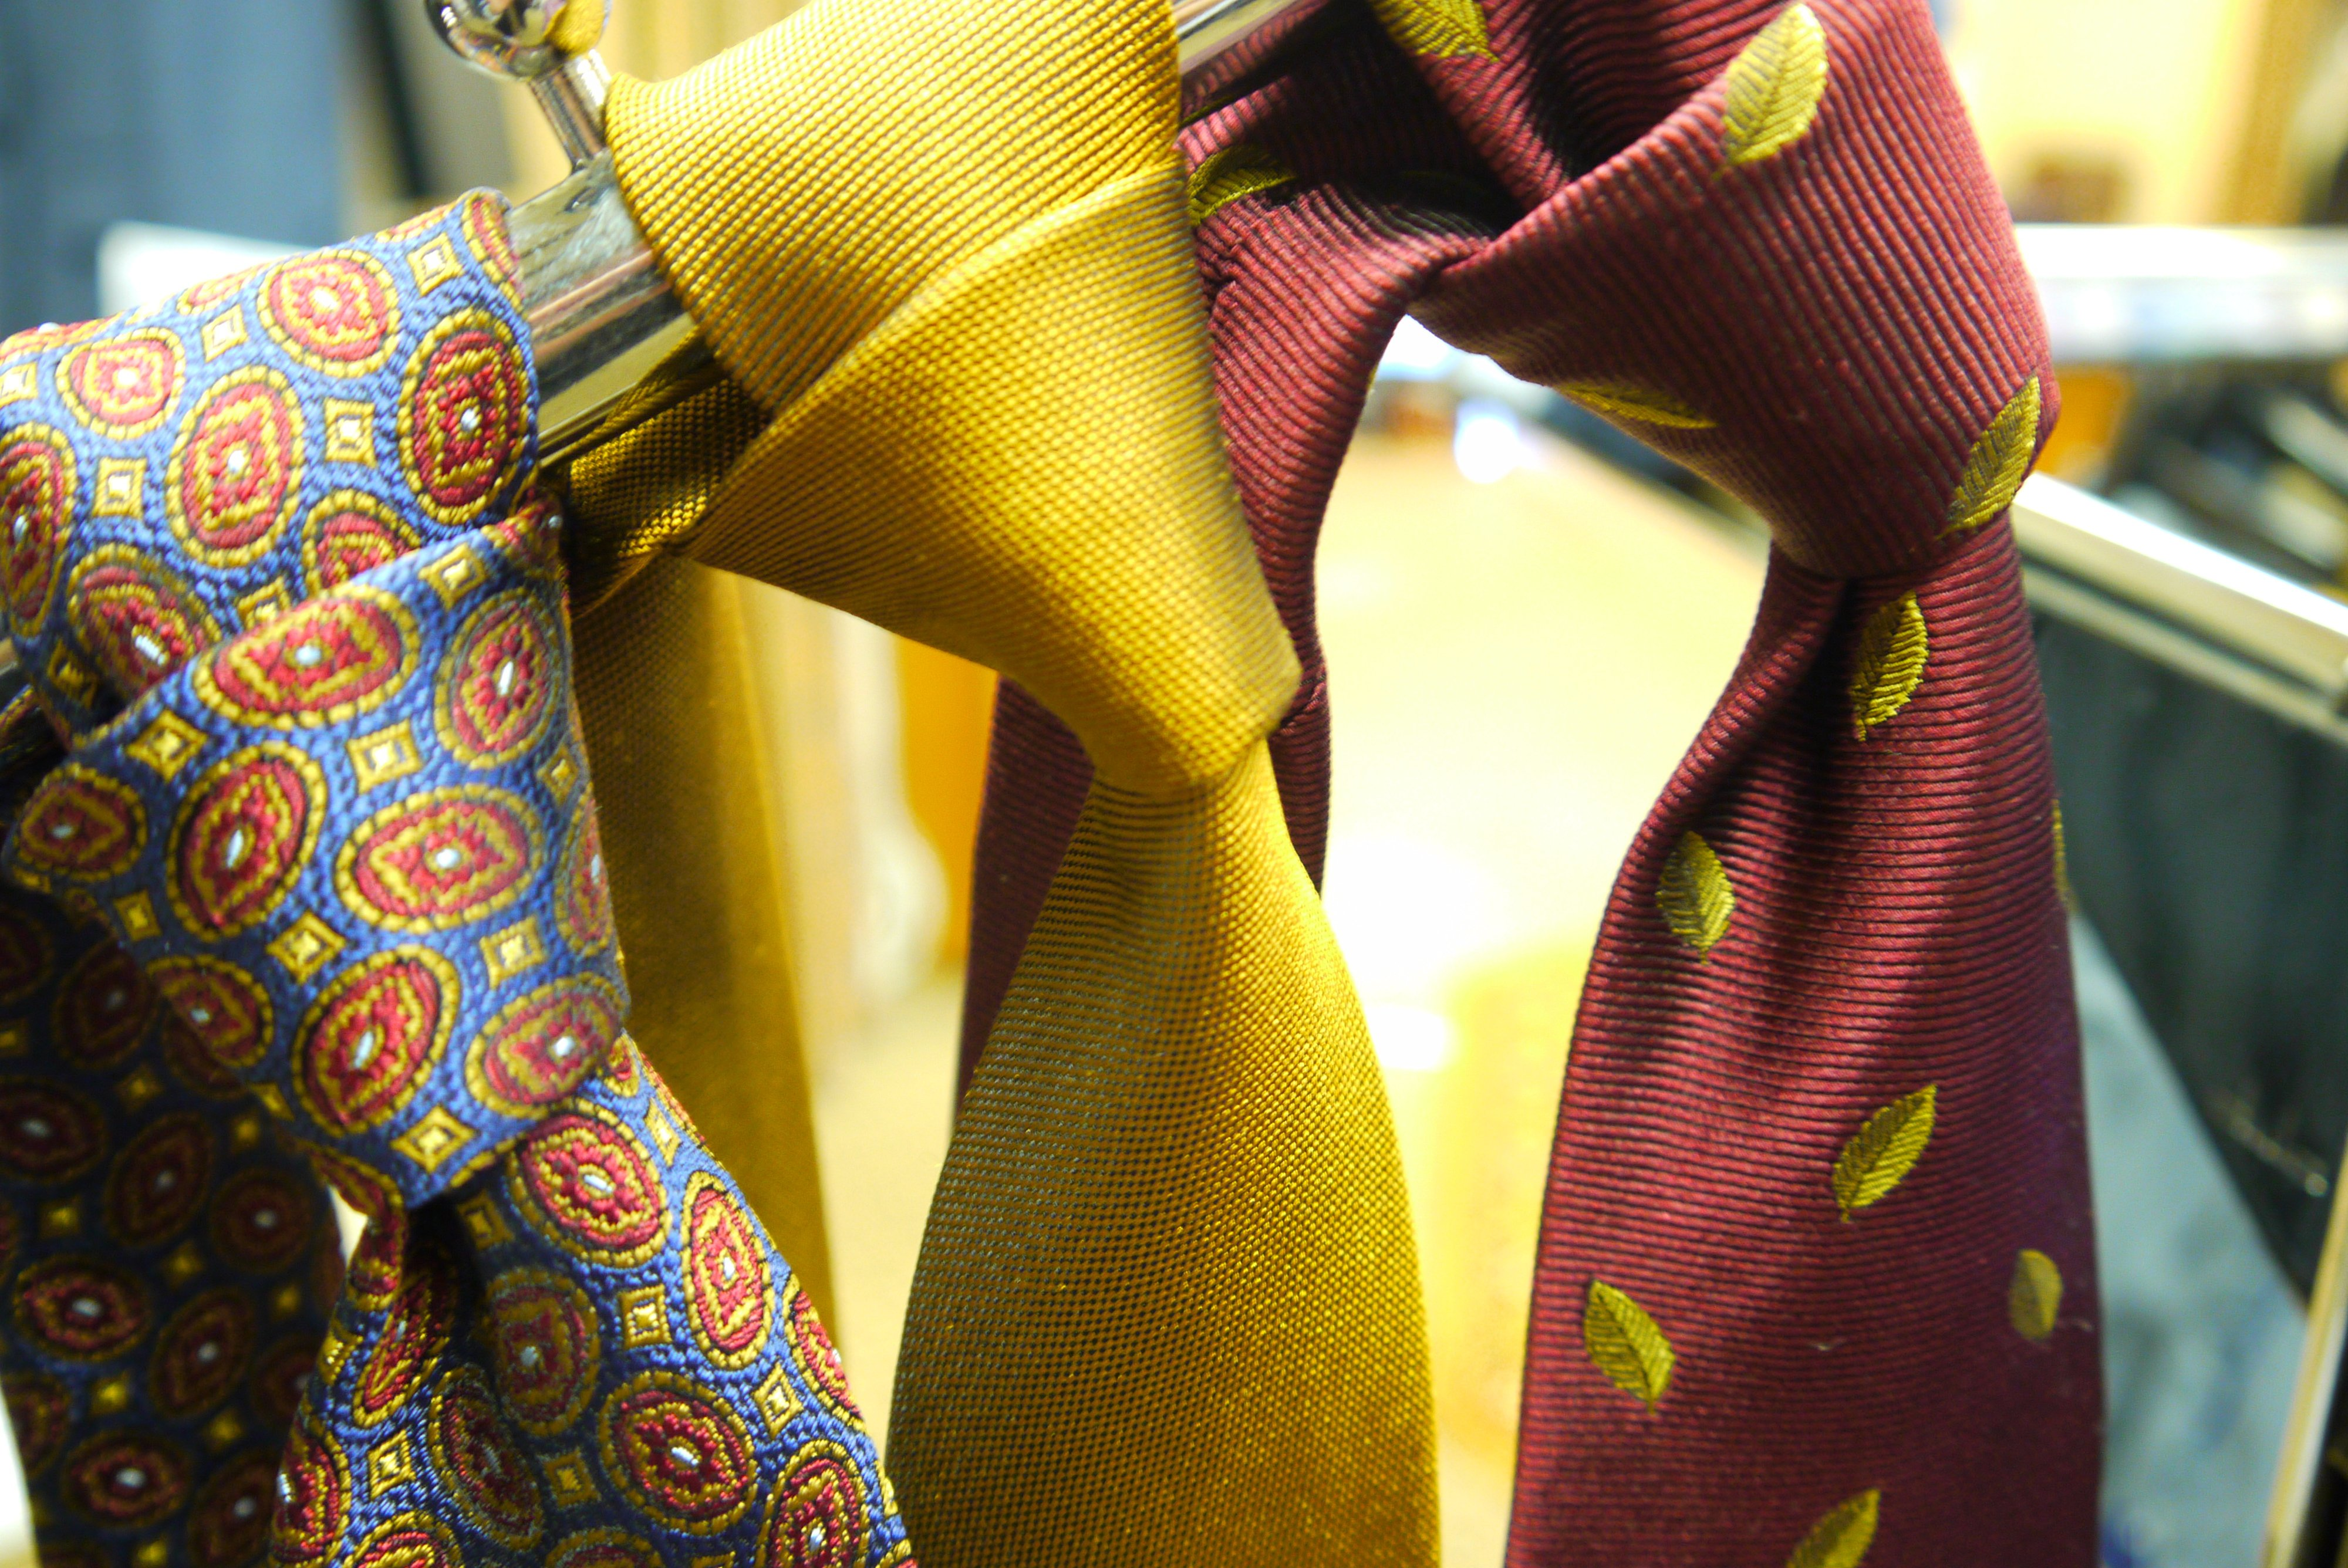 Ties at Heaphy's in Warwick